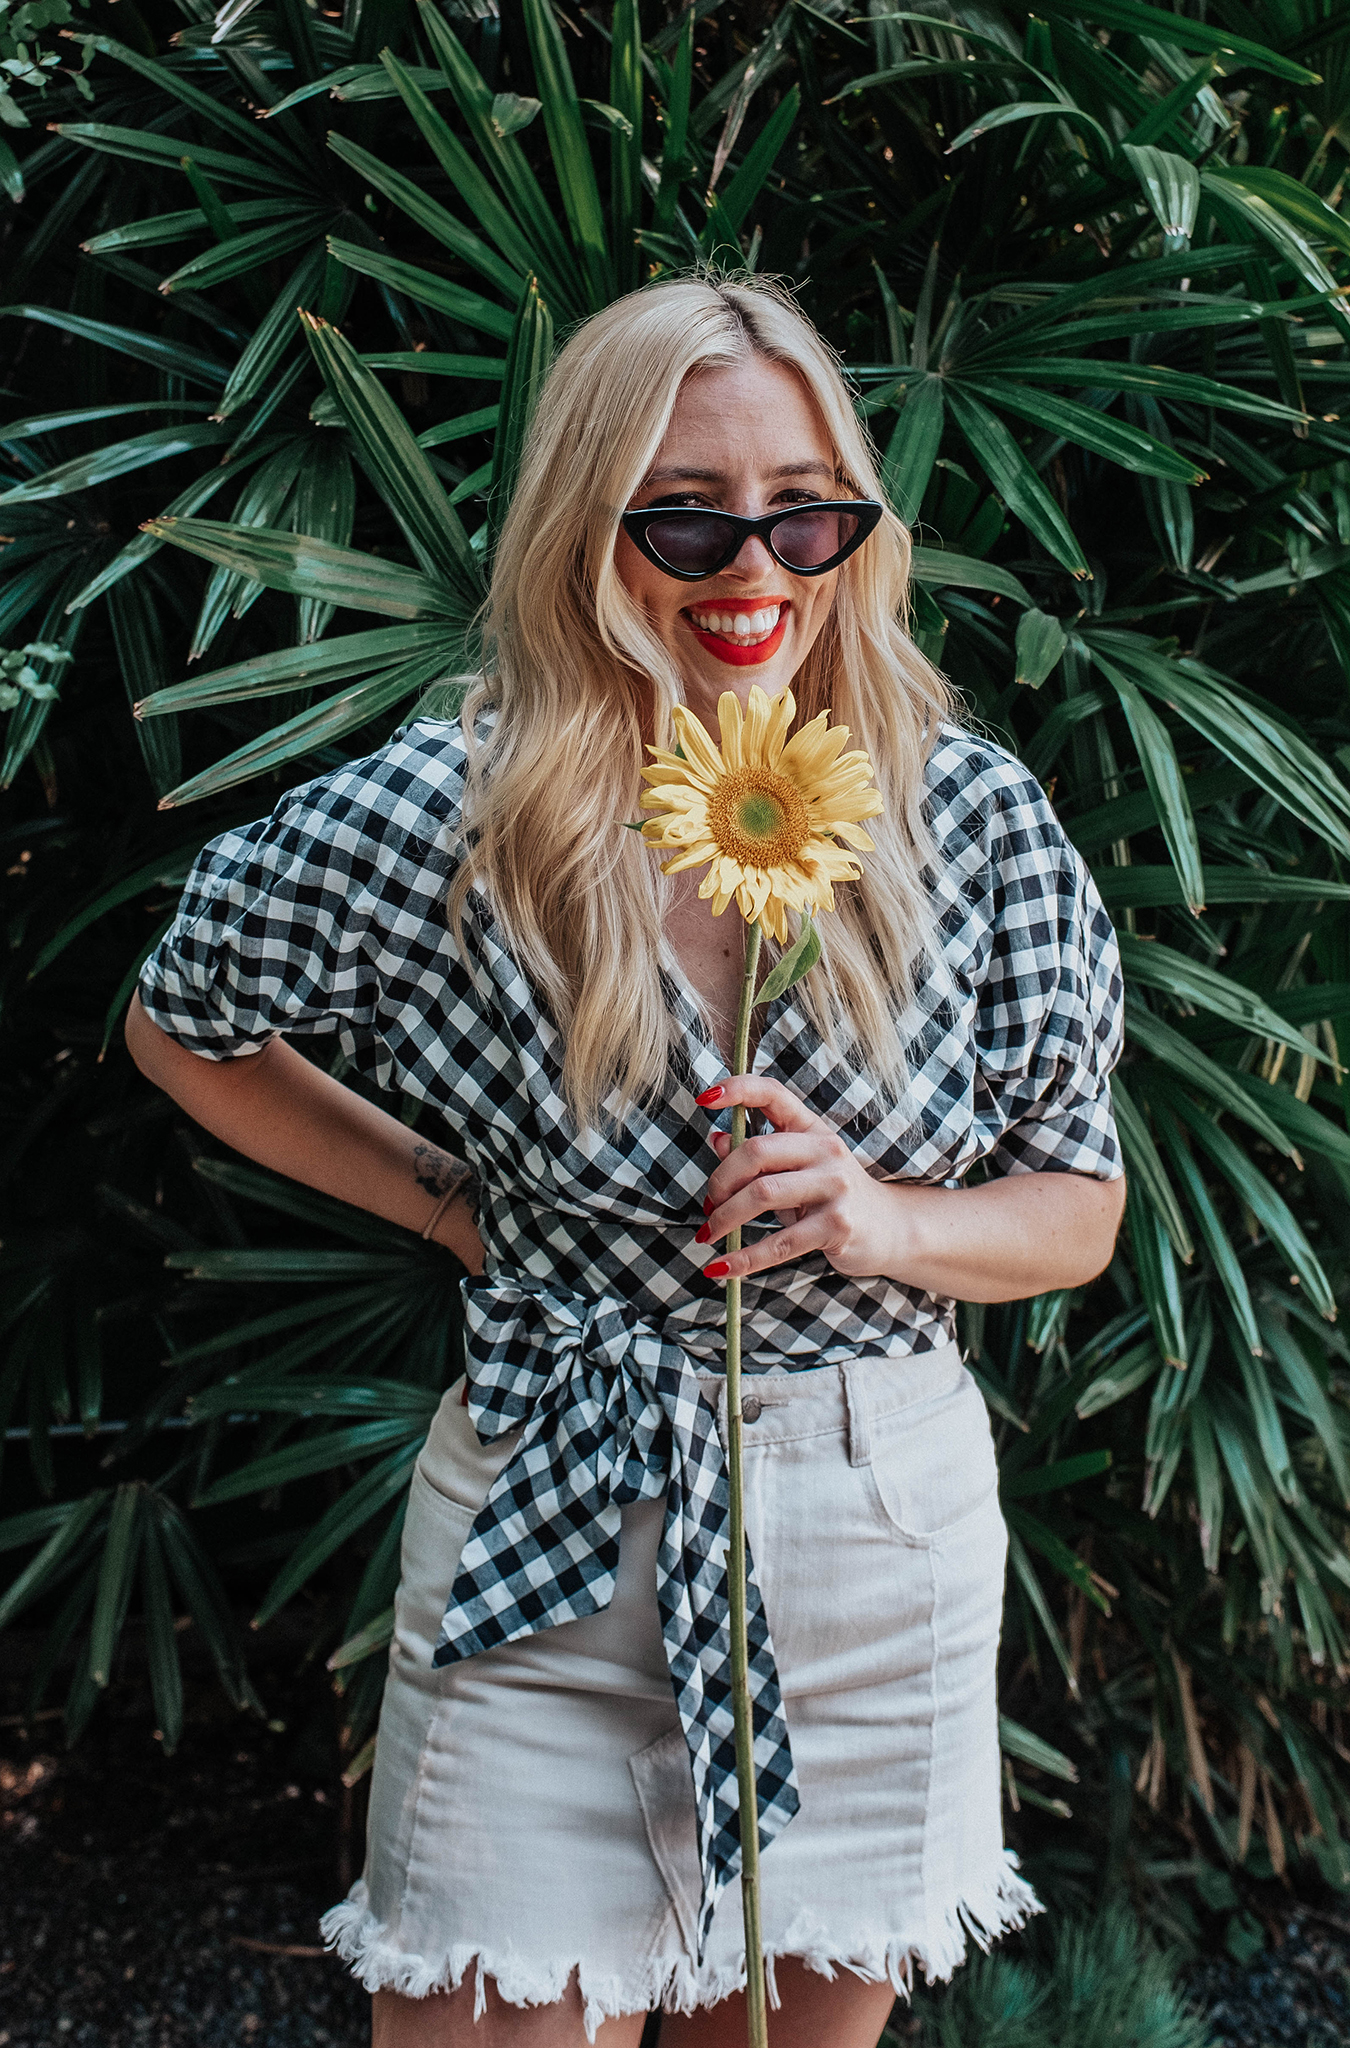 woman wearing gingham top with puff sleeves and white denim skirt while holding a sunflower